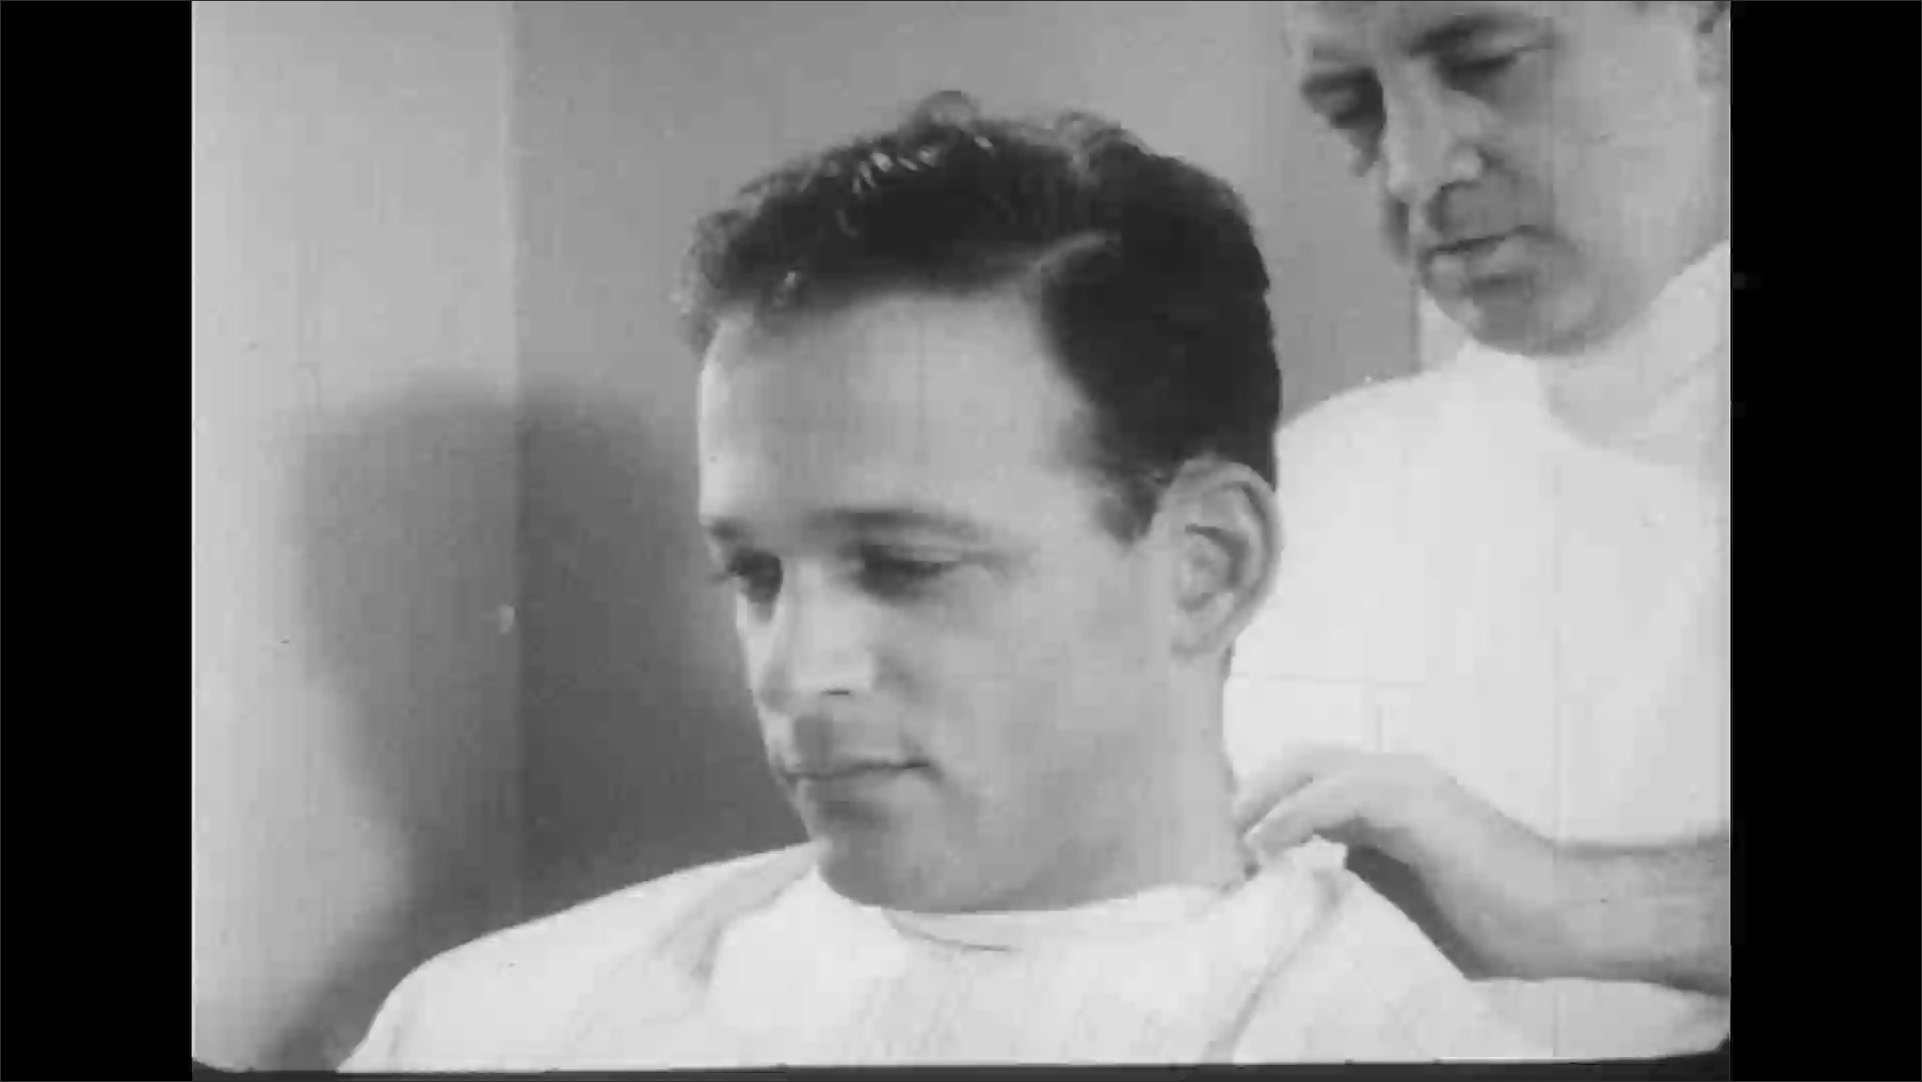 UNITED STATES 1950s: Barber cuts man's hair / Close up, man in chair / Beauty shop interior, man shakes girl's hand, girl sits in chair.